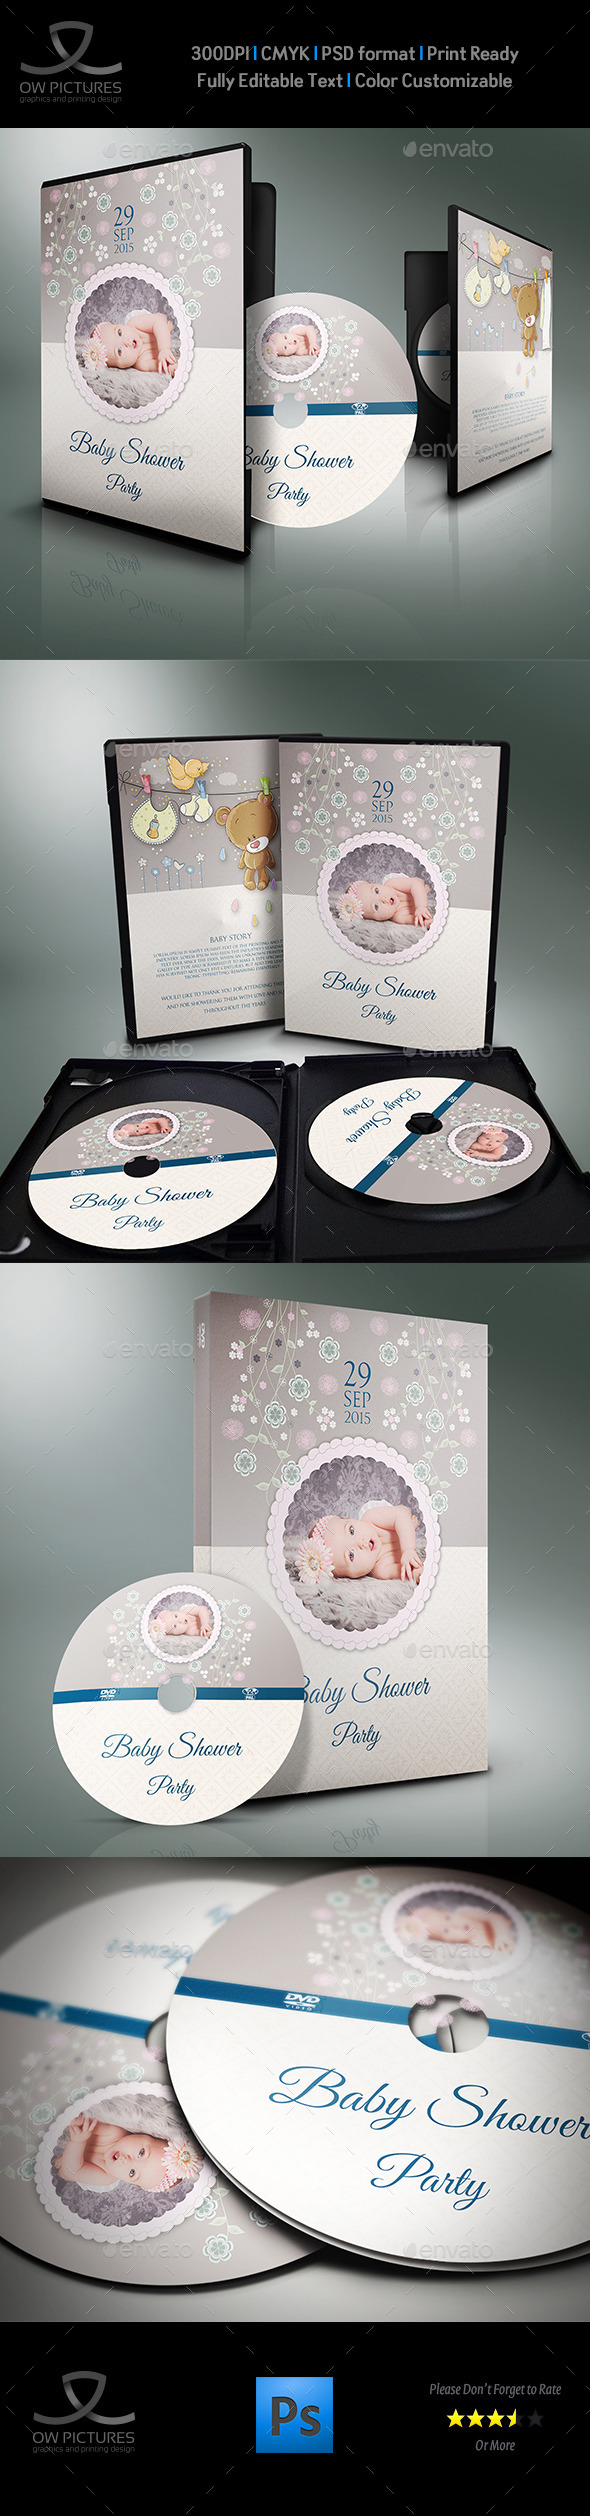 GraphicRiver Baby Shower Party DVD Template Vol.3 11222004